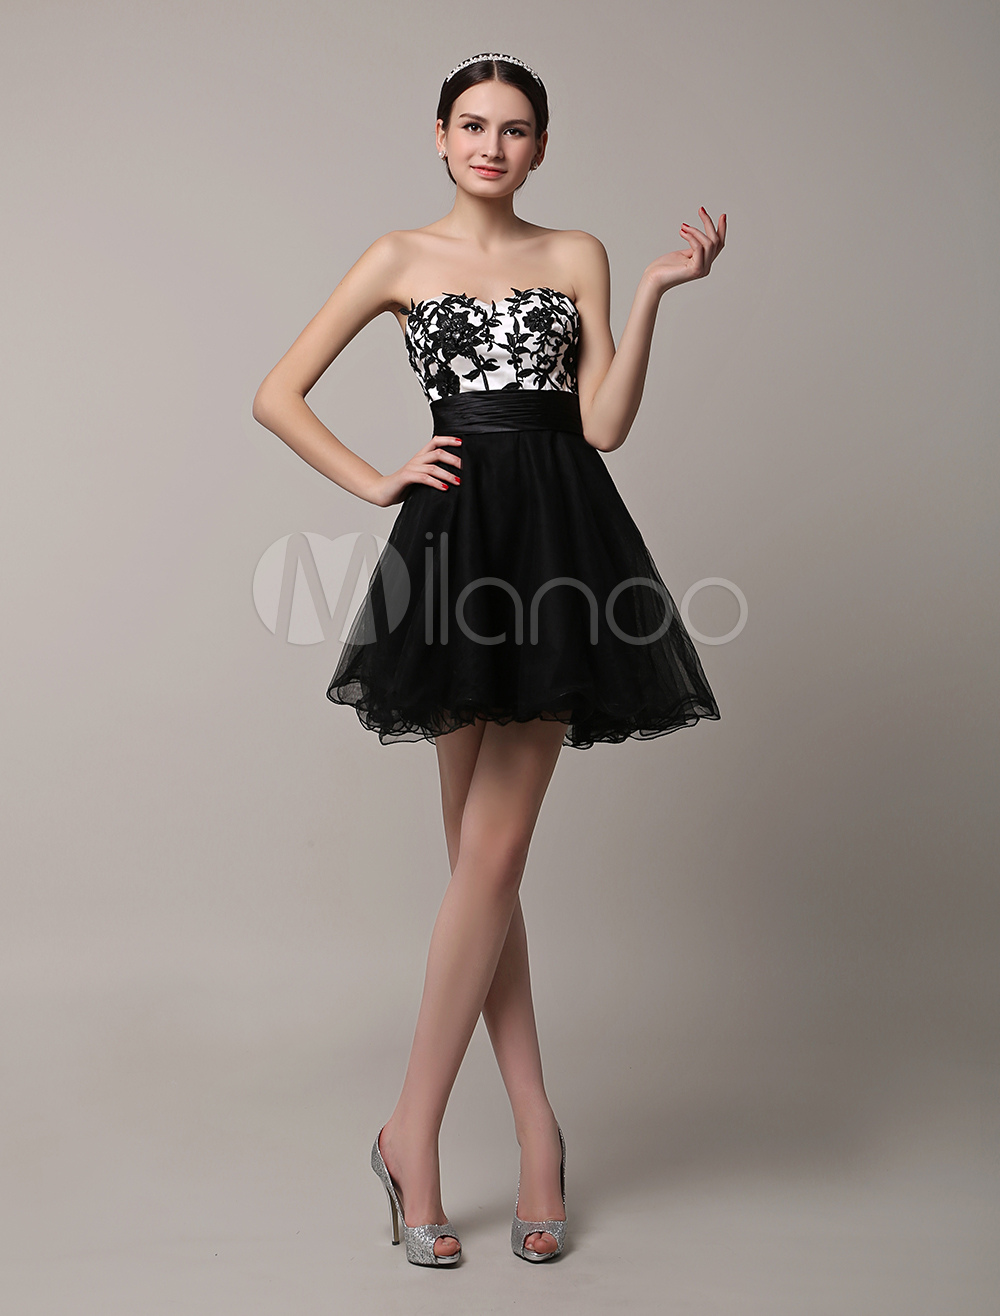 2018 Short Black Strapless Tulle Dress With Applique Bodice (Wedding Cheap Party Dress) photo